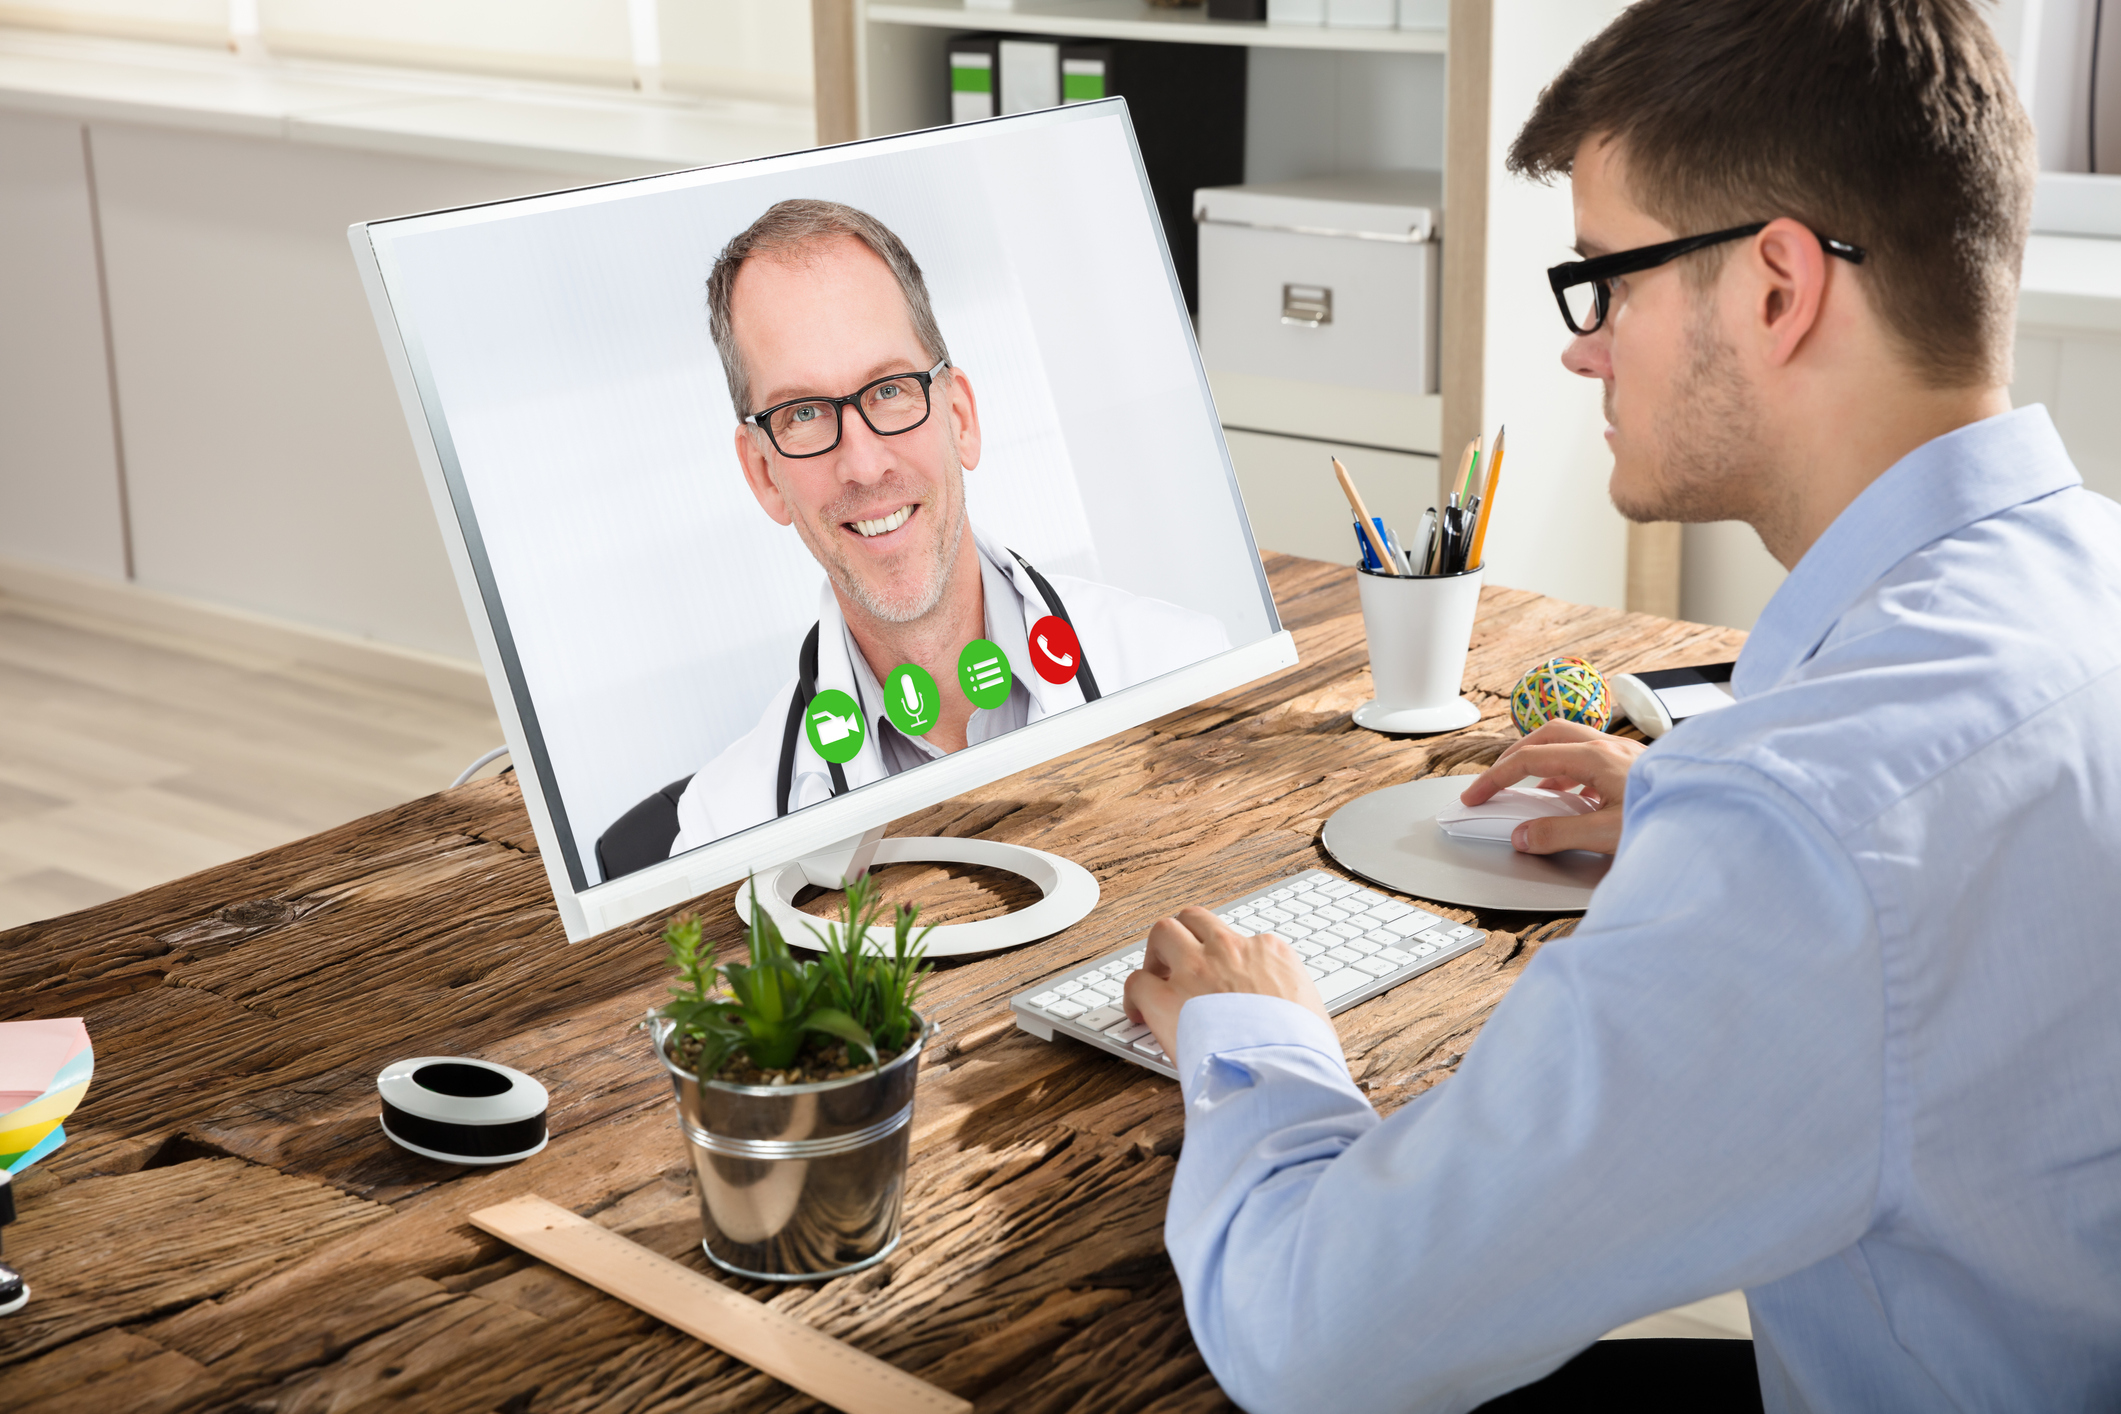 Young Businessman Video Conferencing With Smiling Male Doctor On Computer In Office